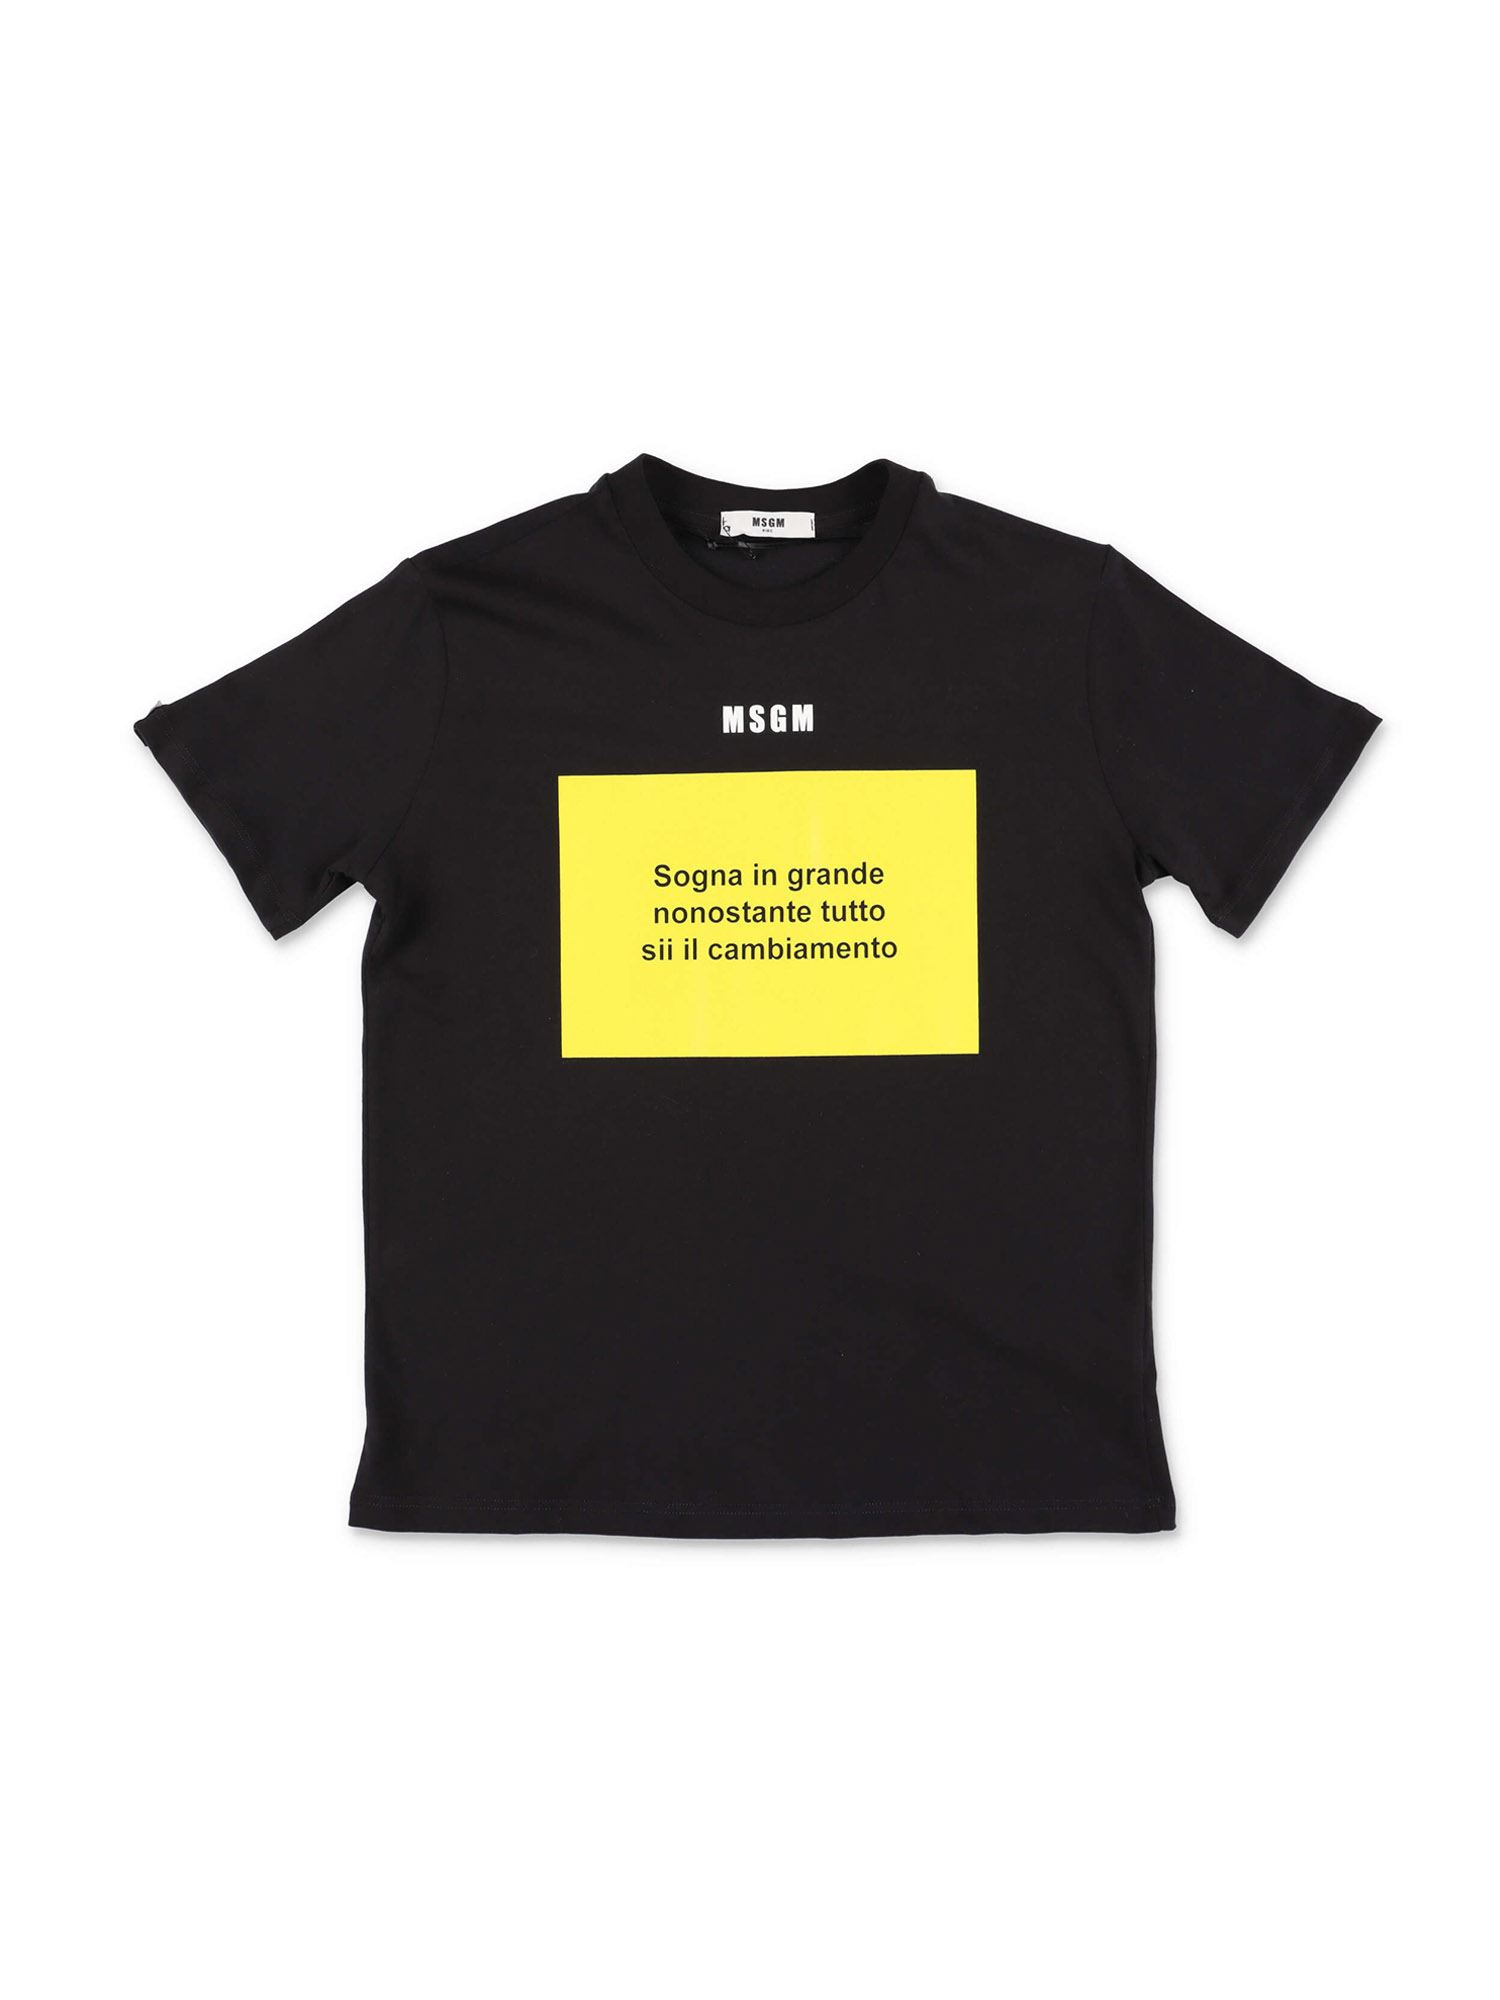 Msgm PRINTED T-SHIRT IN BLACK AND YELLOW